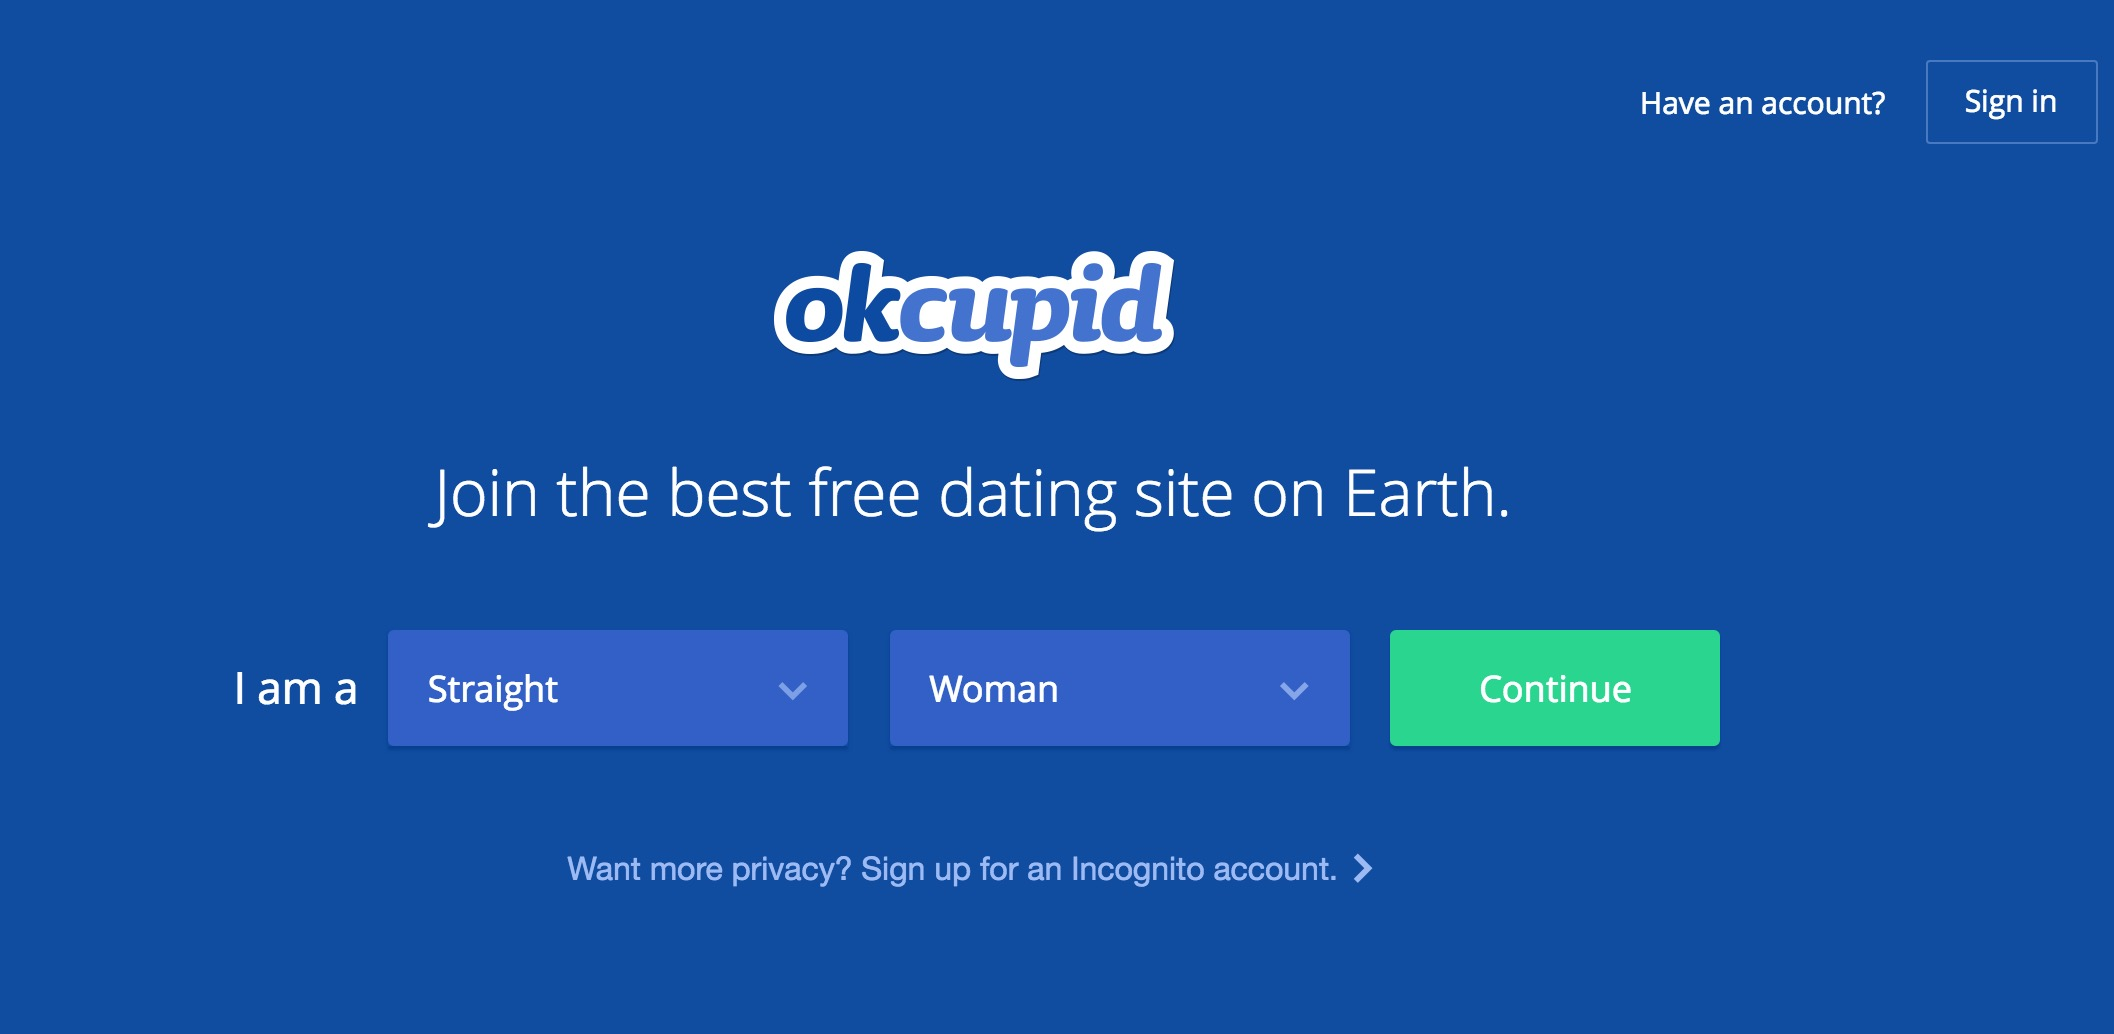 4 Best Dating Sites With 100 Free Trials & Accounts